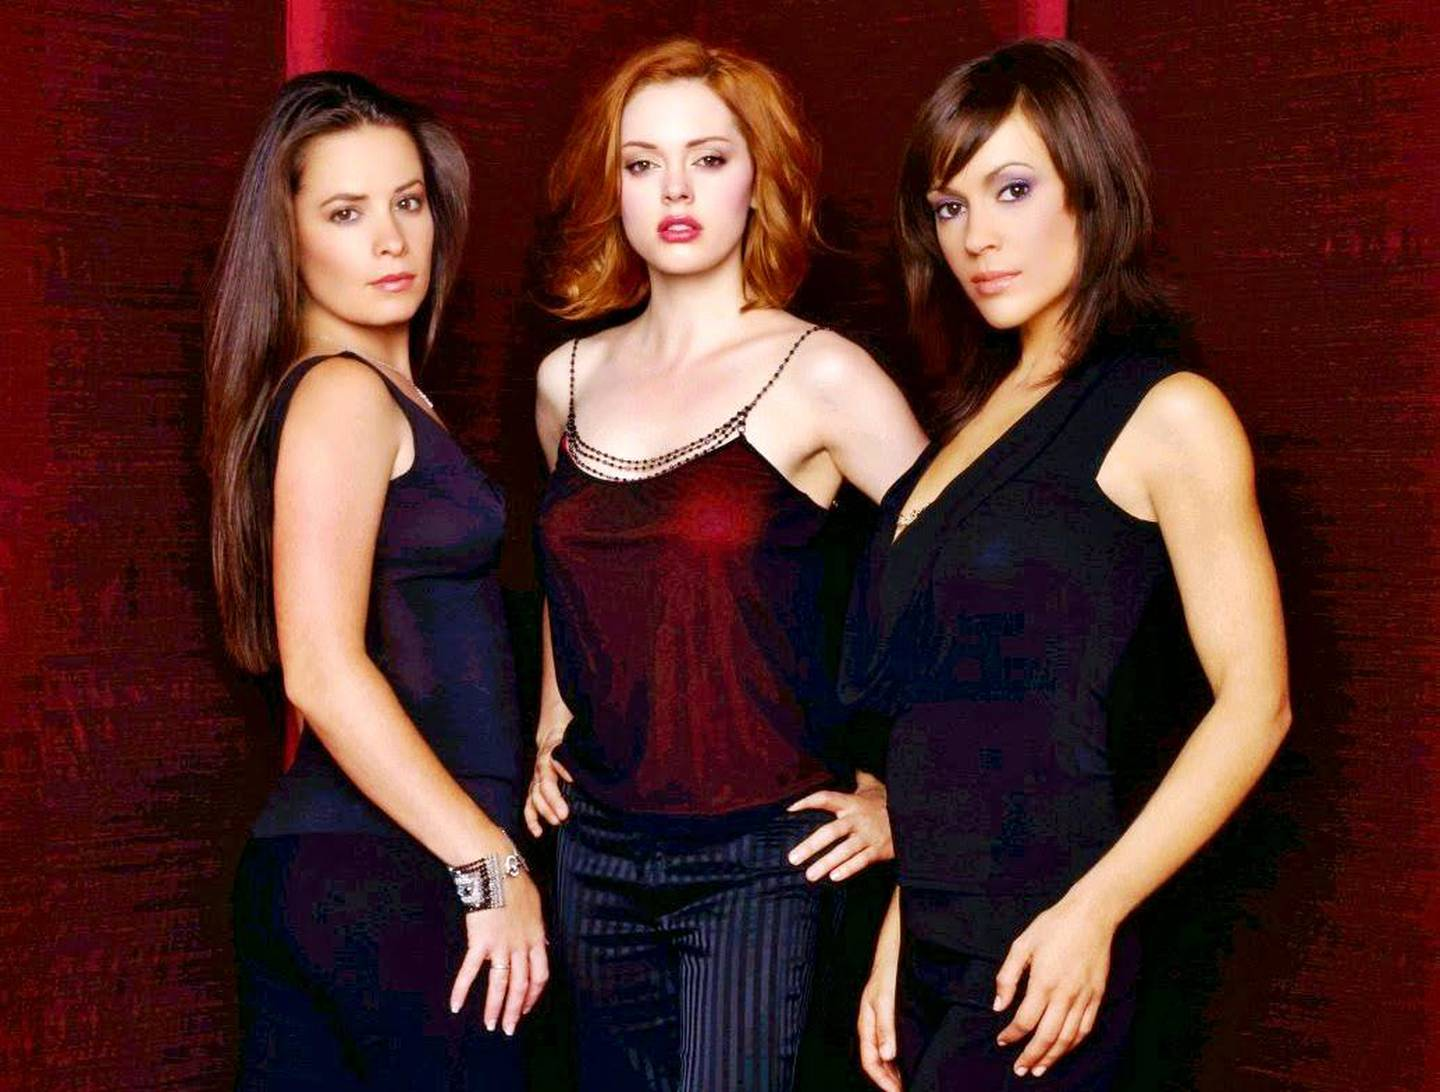 Three sister battle against the forces of evil in Charmed, which ran in the US from 1998 to 2006. From left: Holly Marie Combs, Rose McGowan, and Alyssa Milano. CREDIT: Courtesy Spelling Television